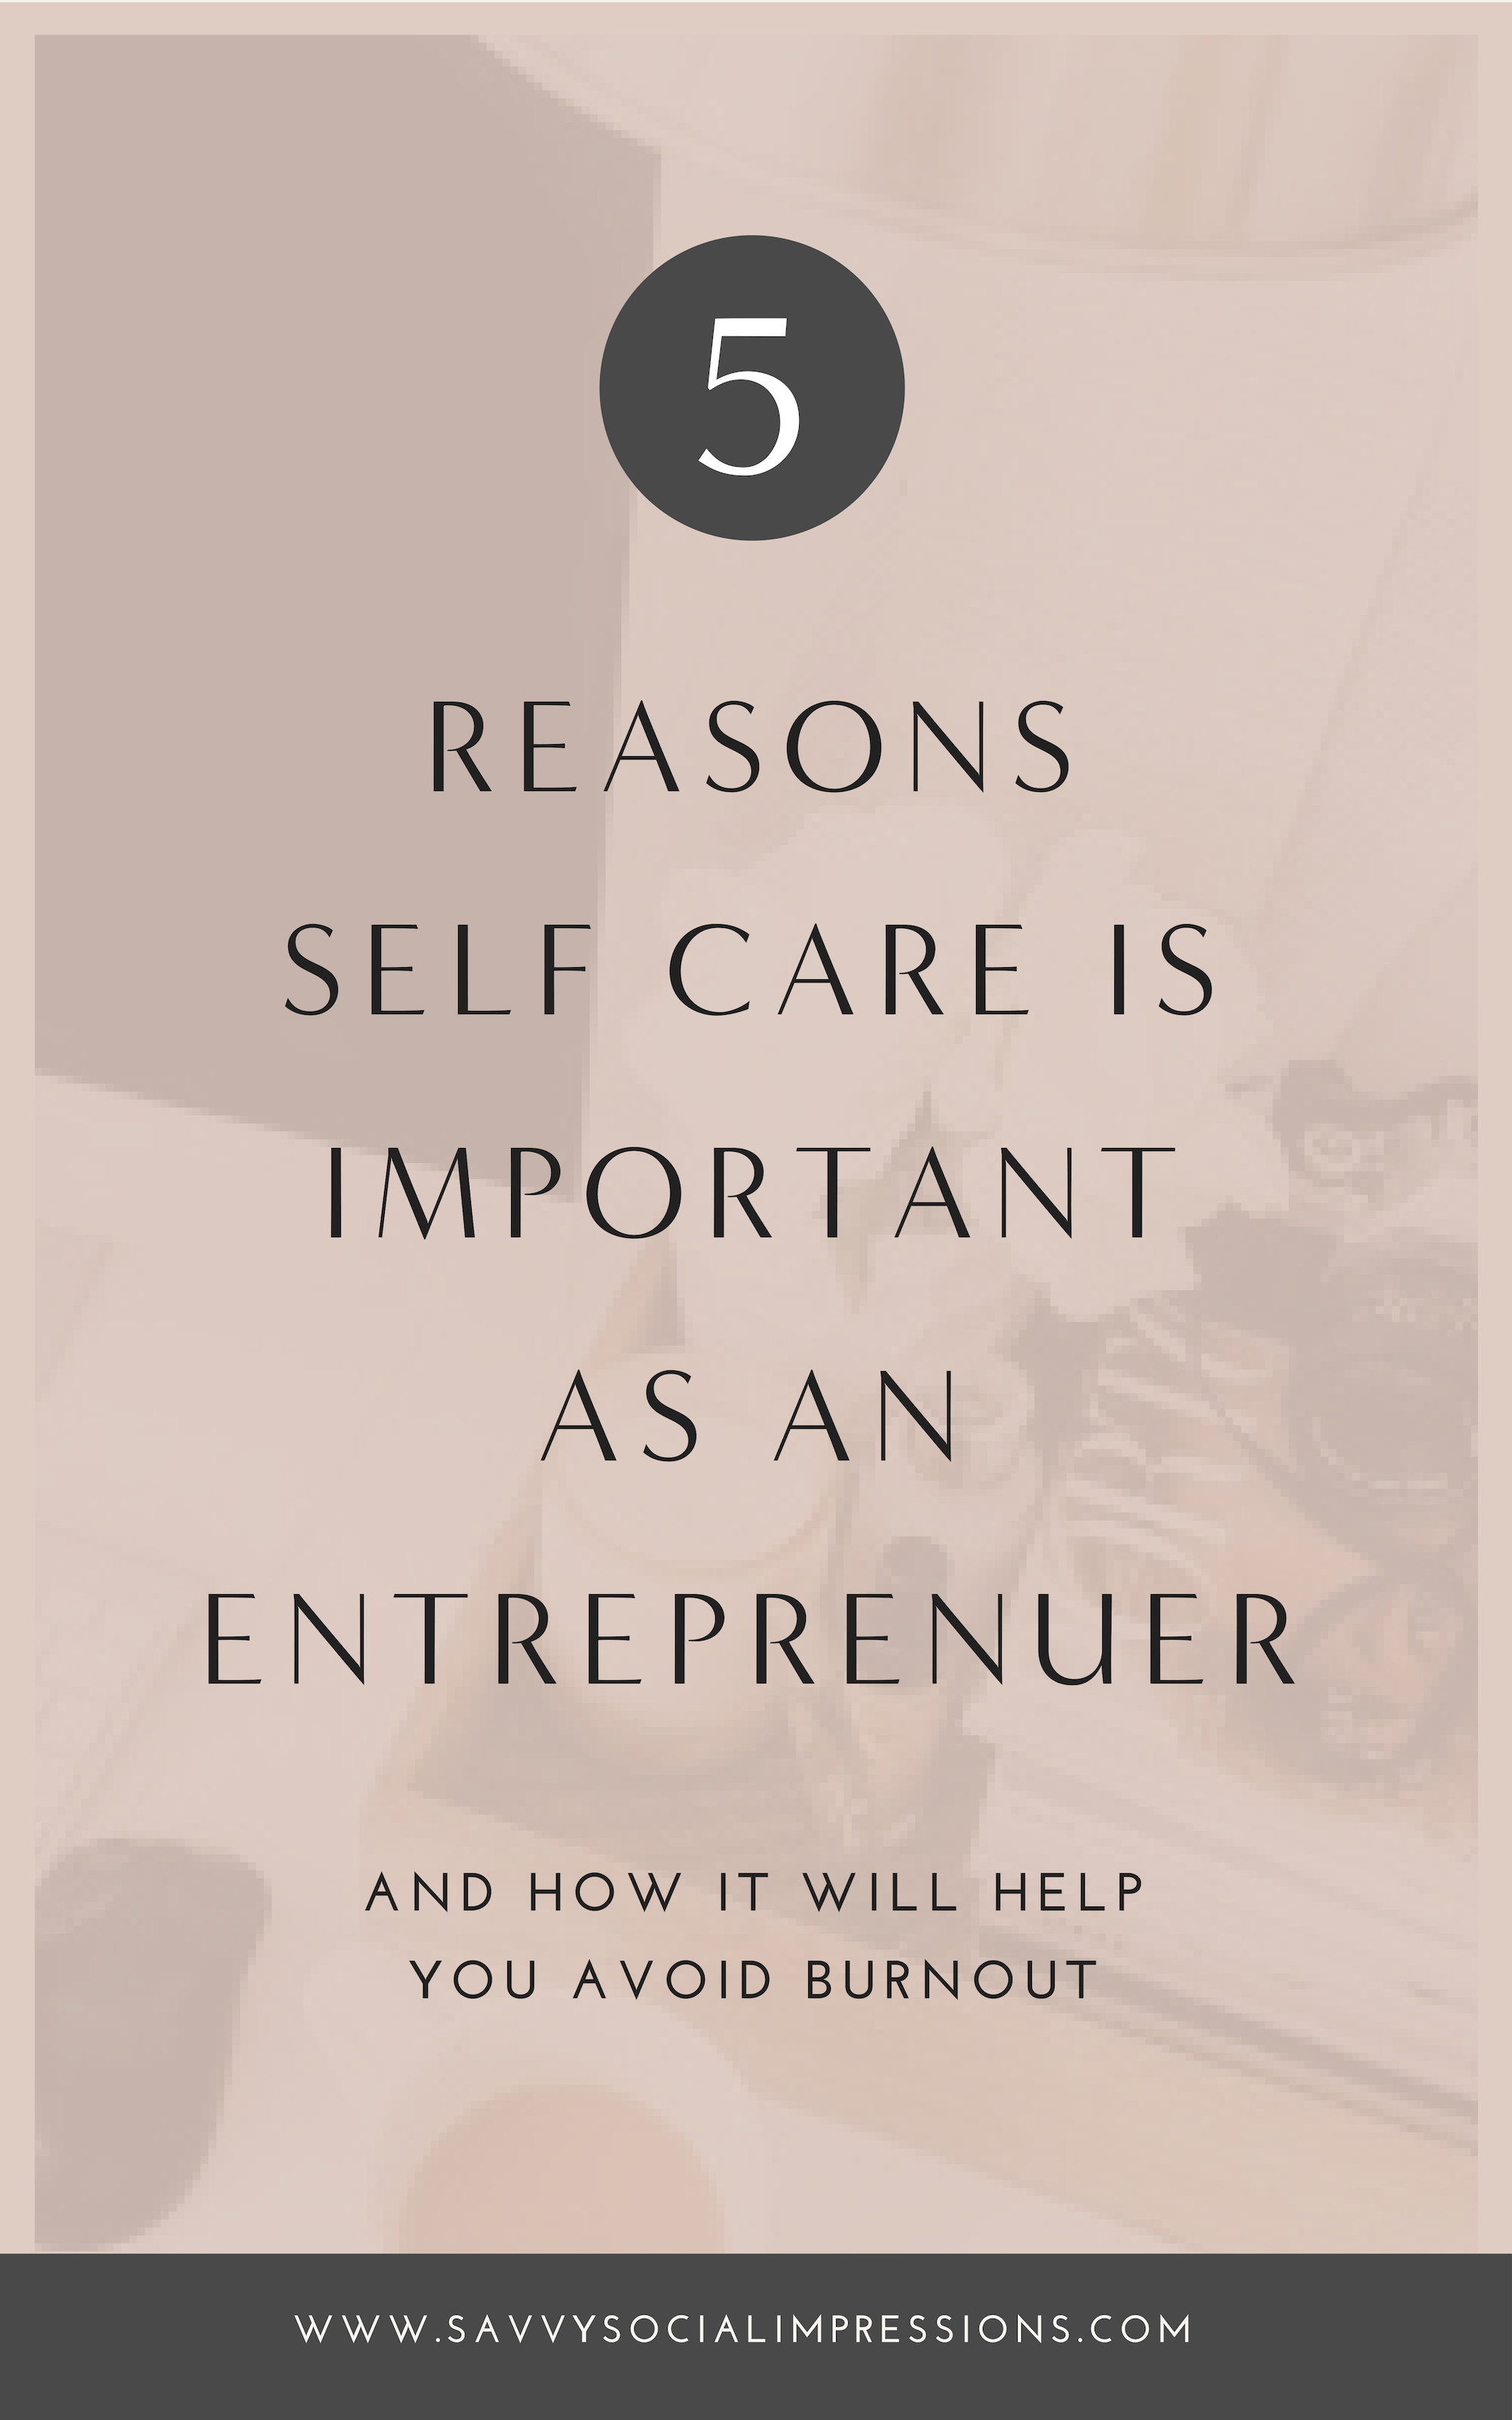 REASONS  SELF CARE IS IMPORTANT AS AN ENTREPRENUER.png